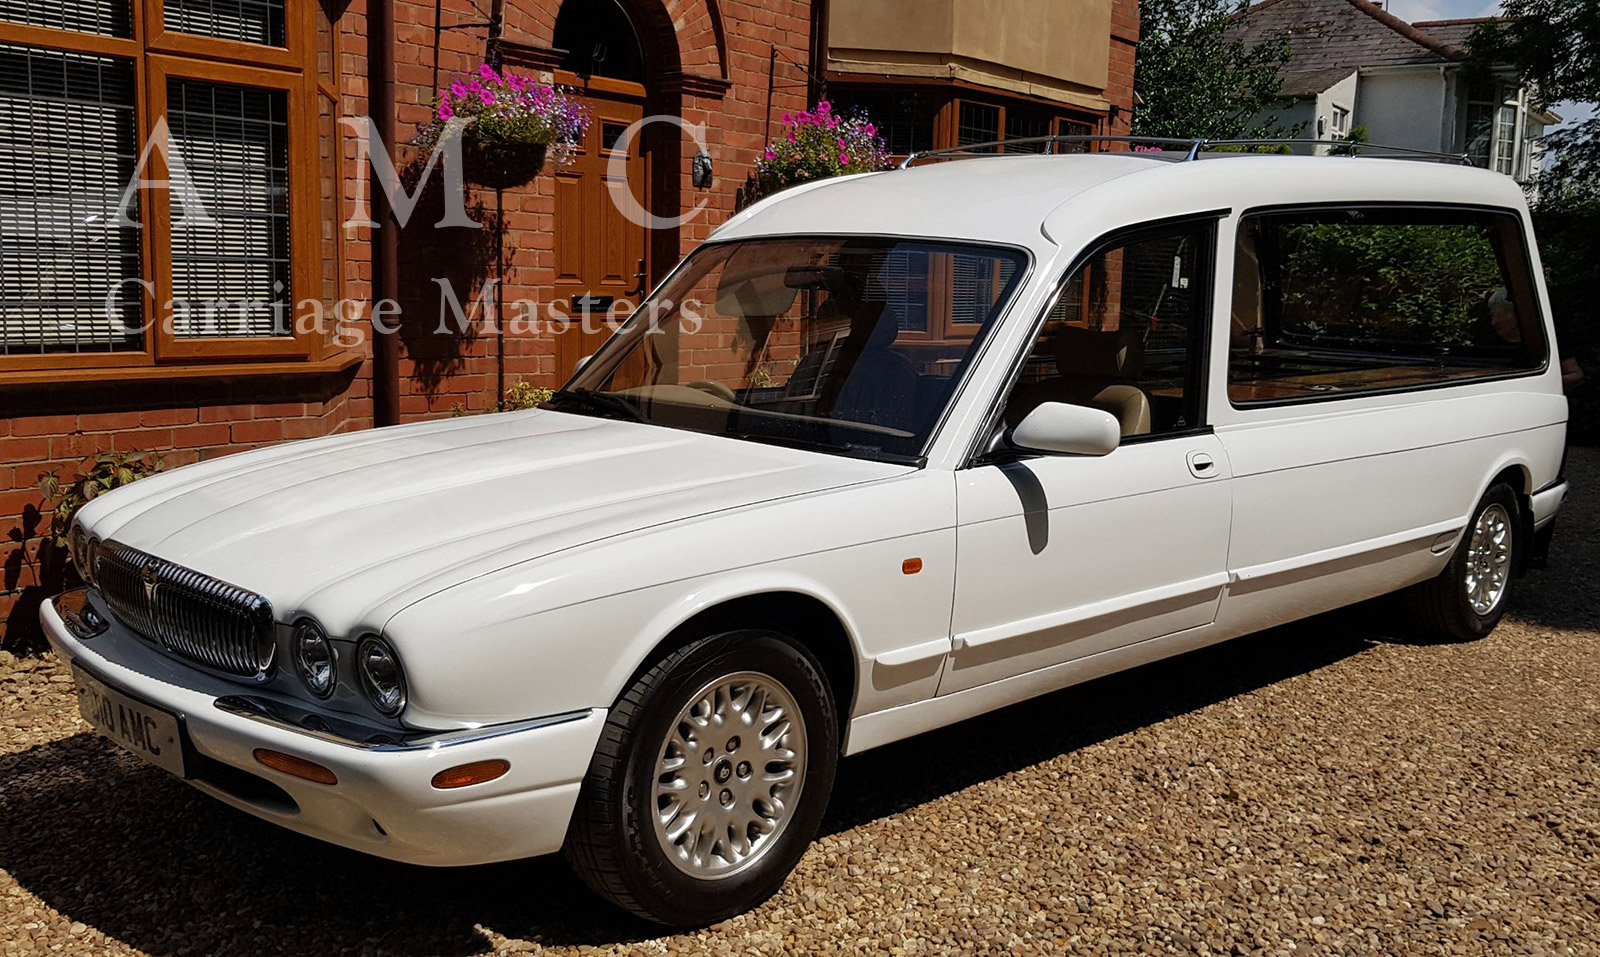 White Daimler/Jaguar XJ Hearse